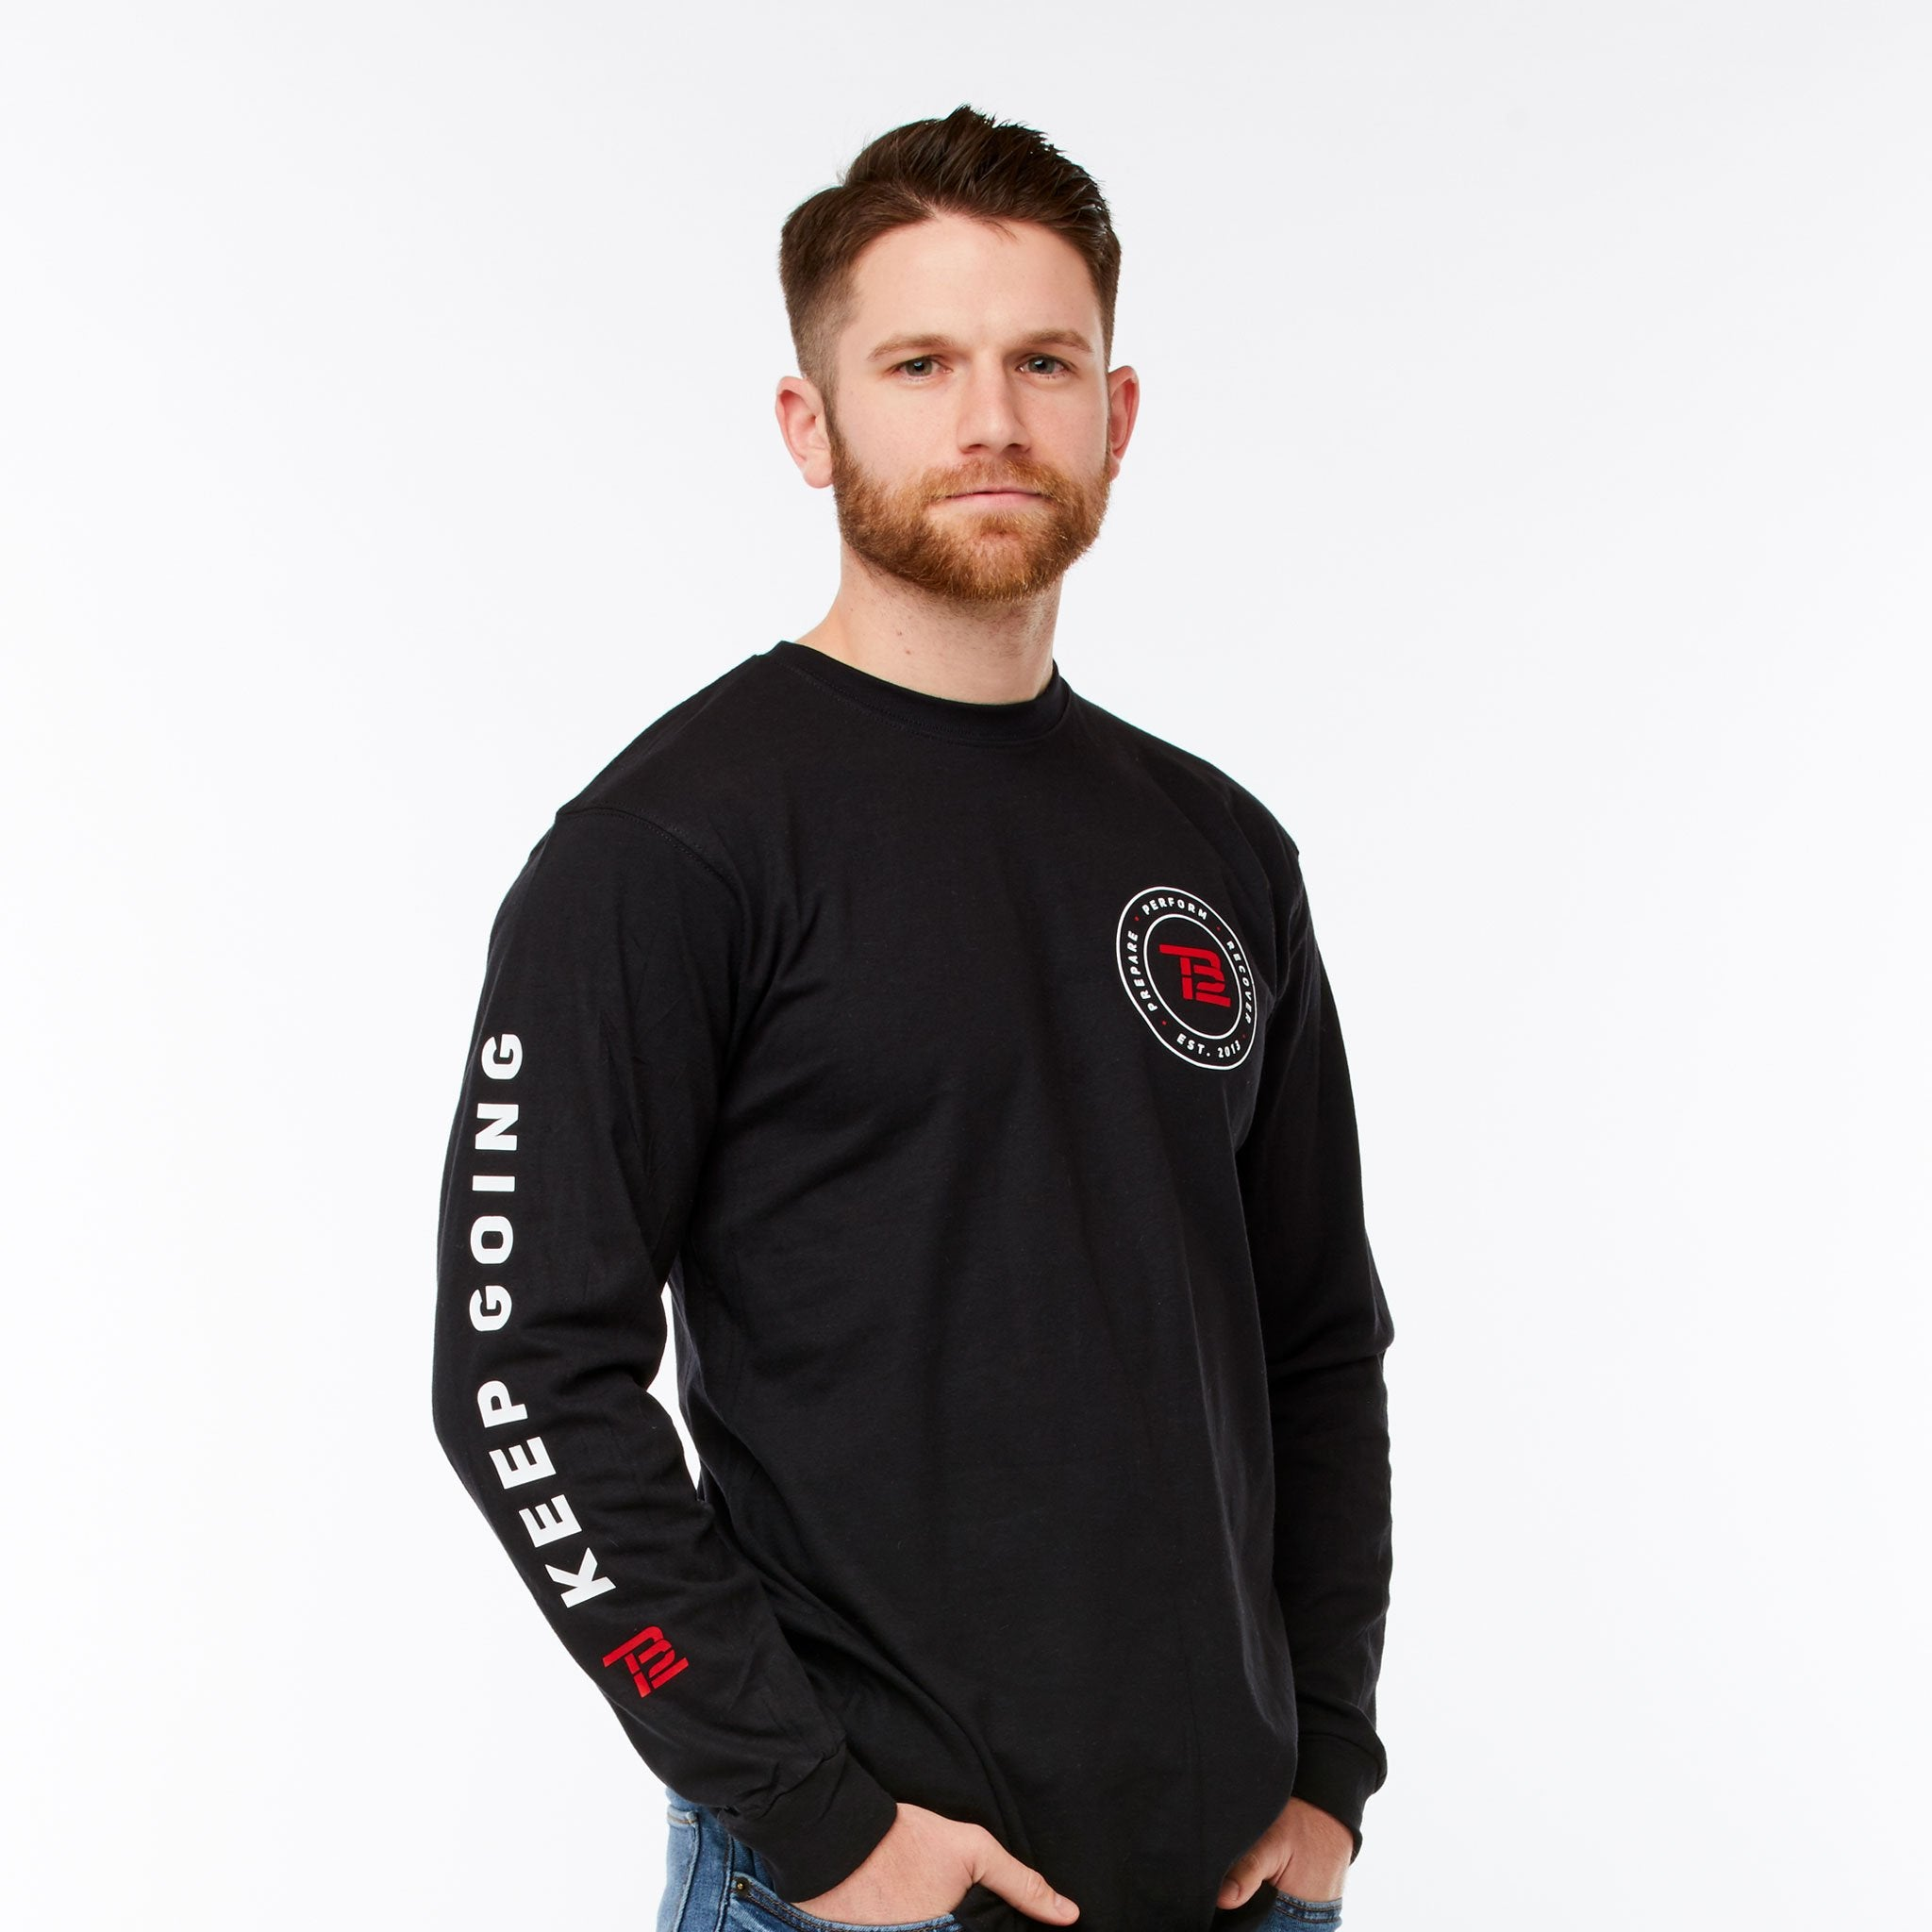 Black TB12™ Keep Going Long-Sleeve Shirt